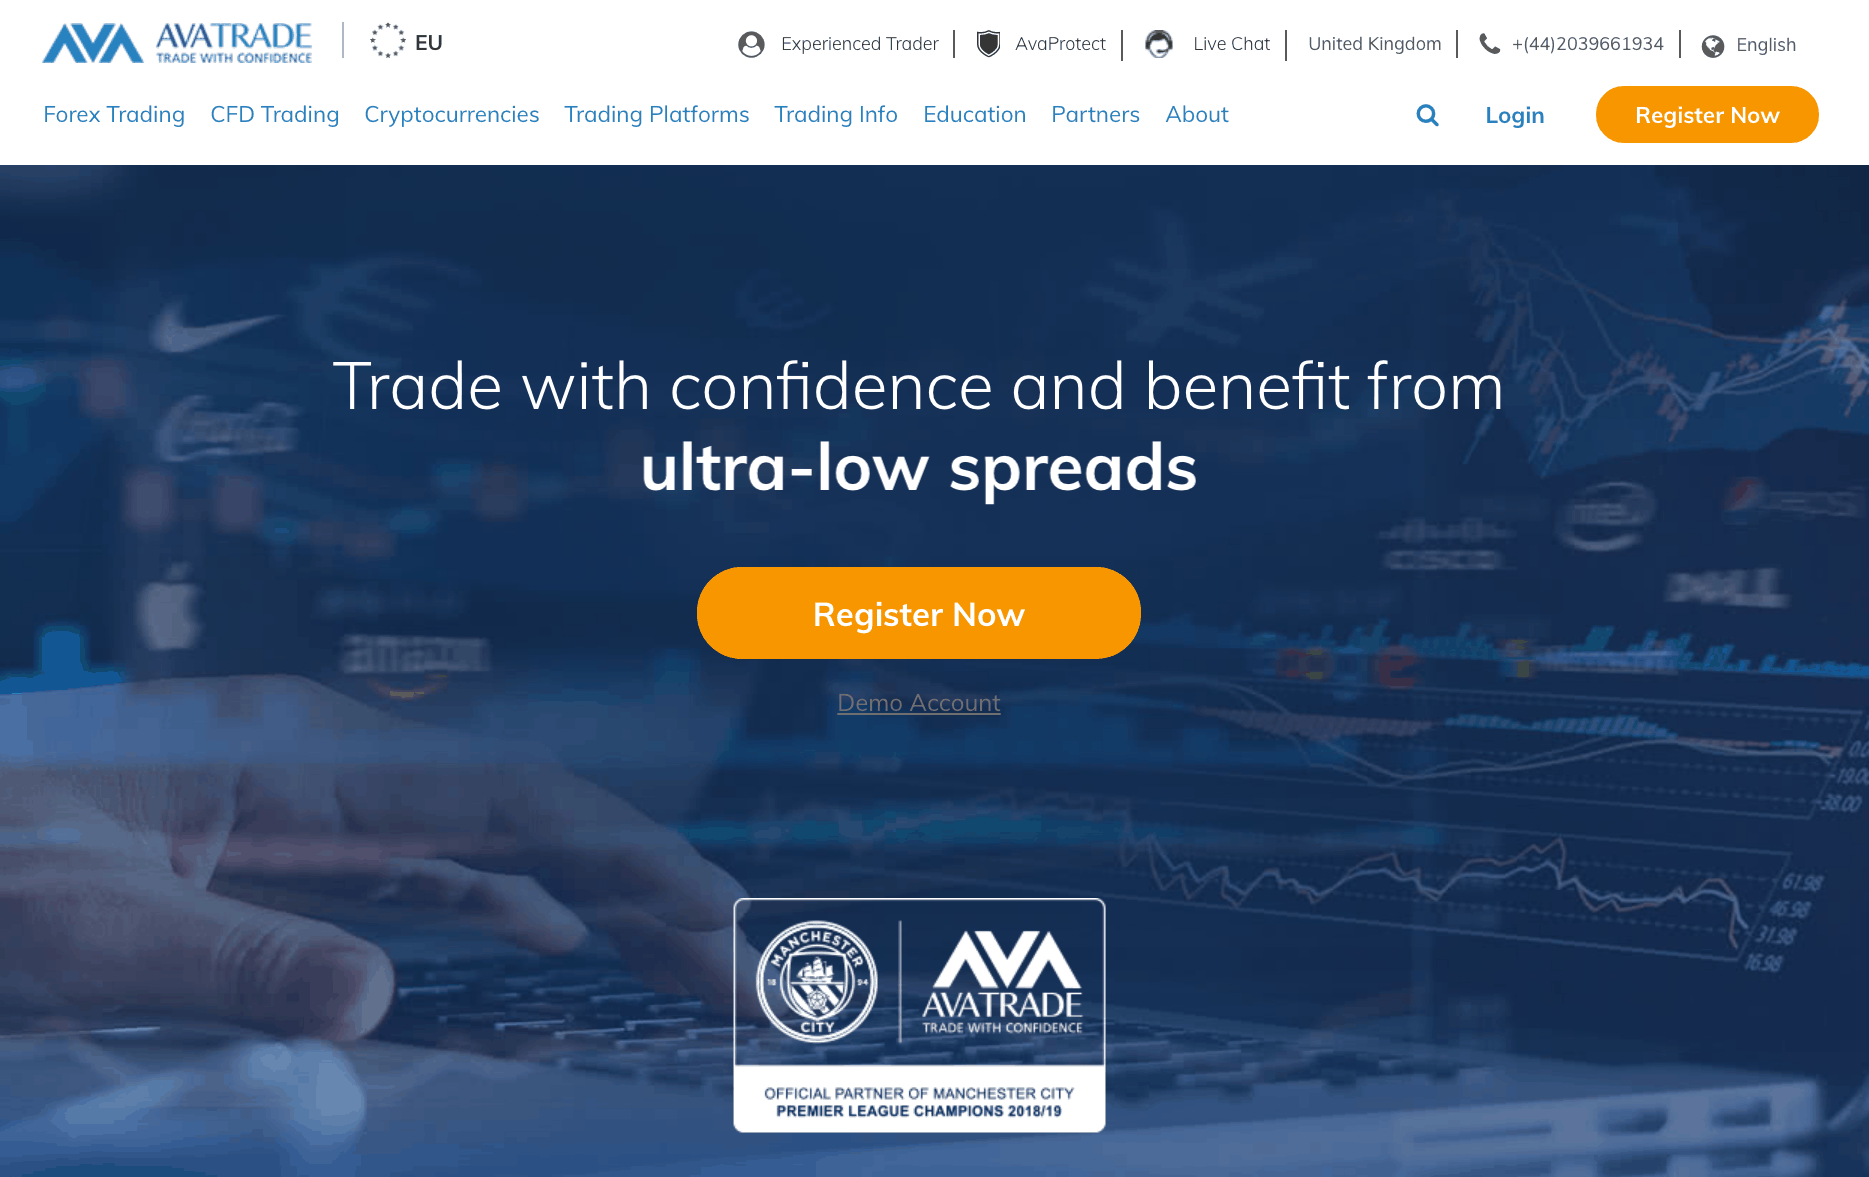 AvaTrade home page